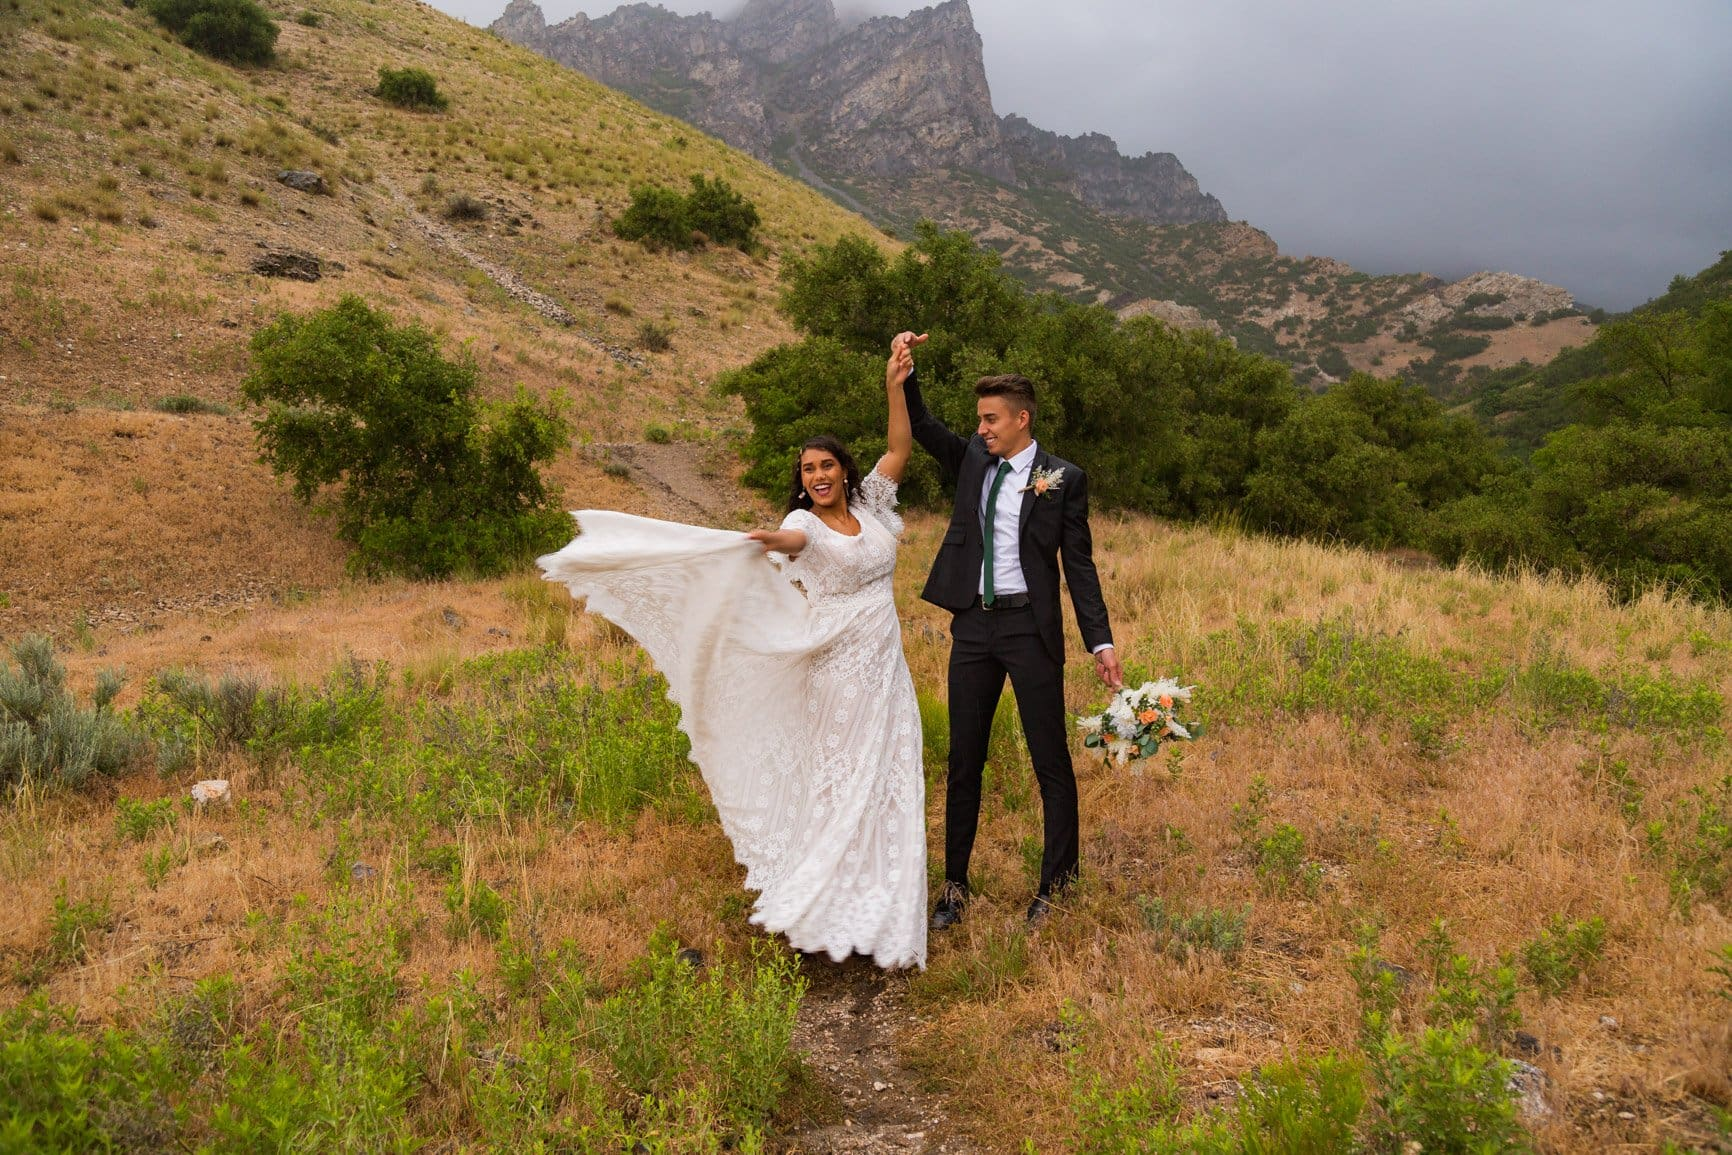 a vow renewal in provo canyon utah